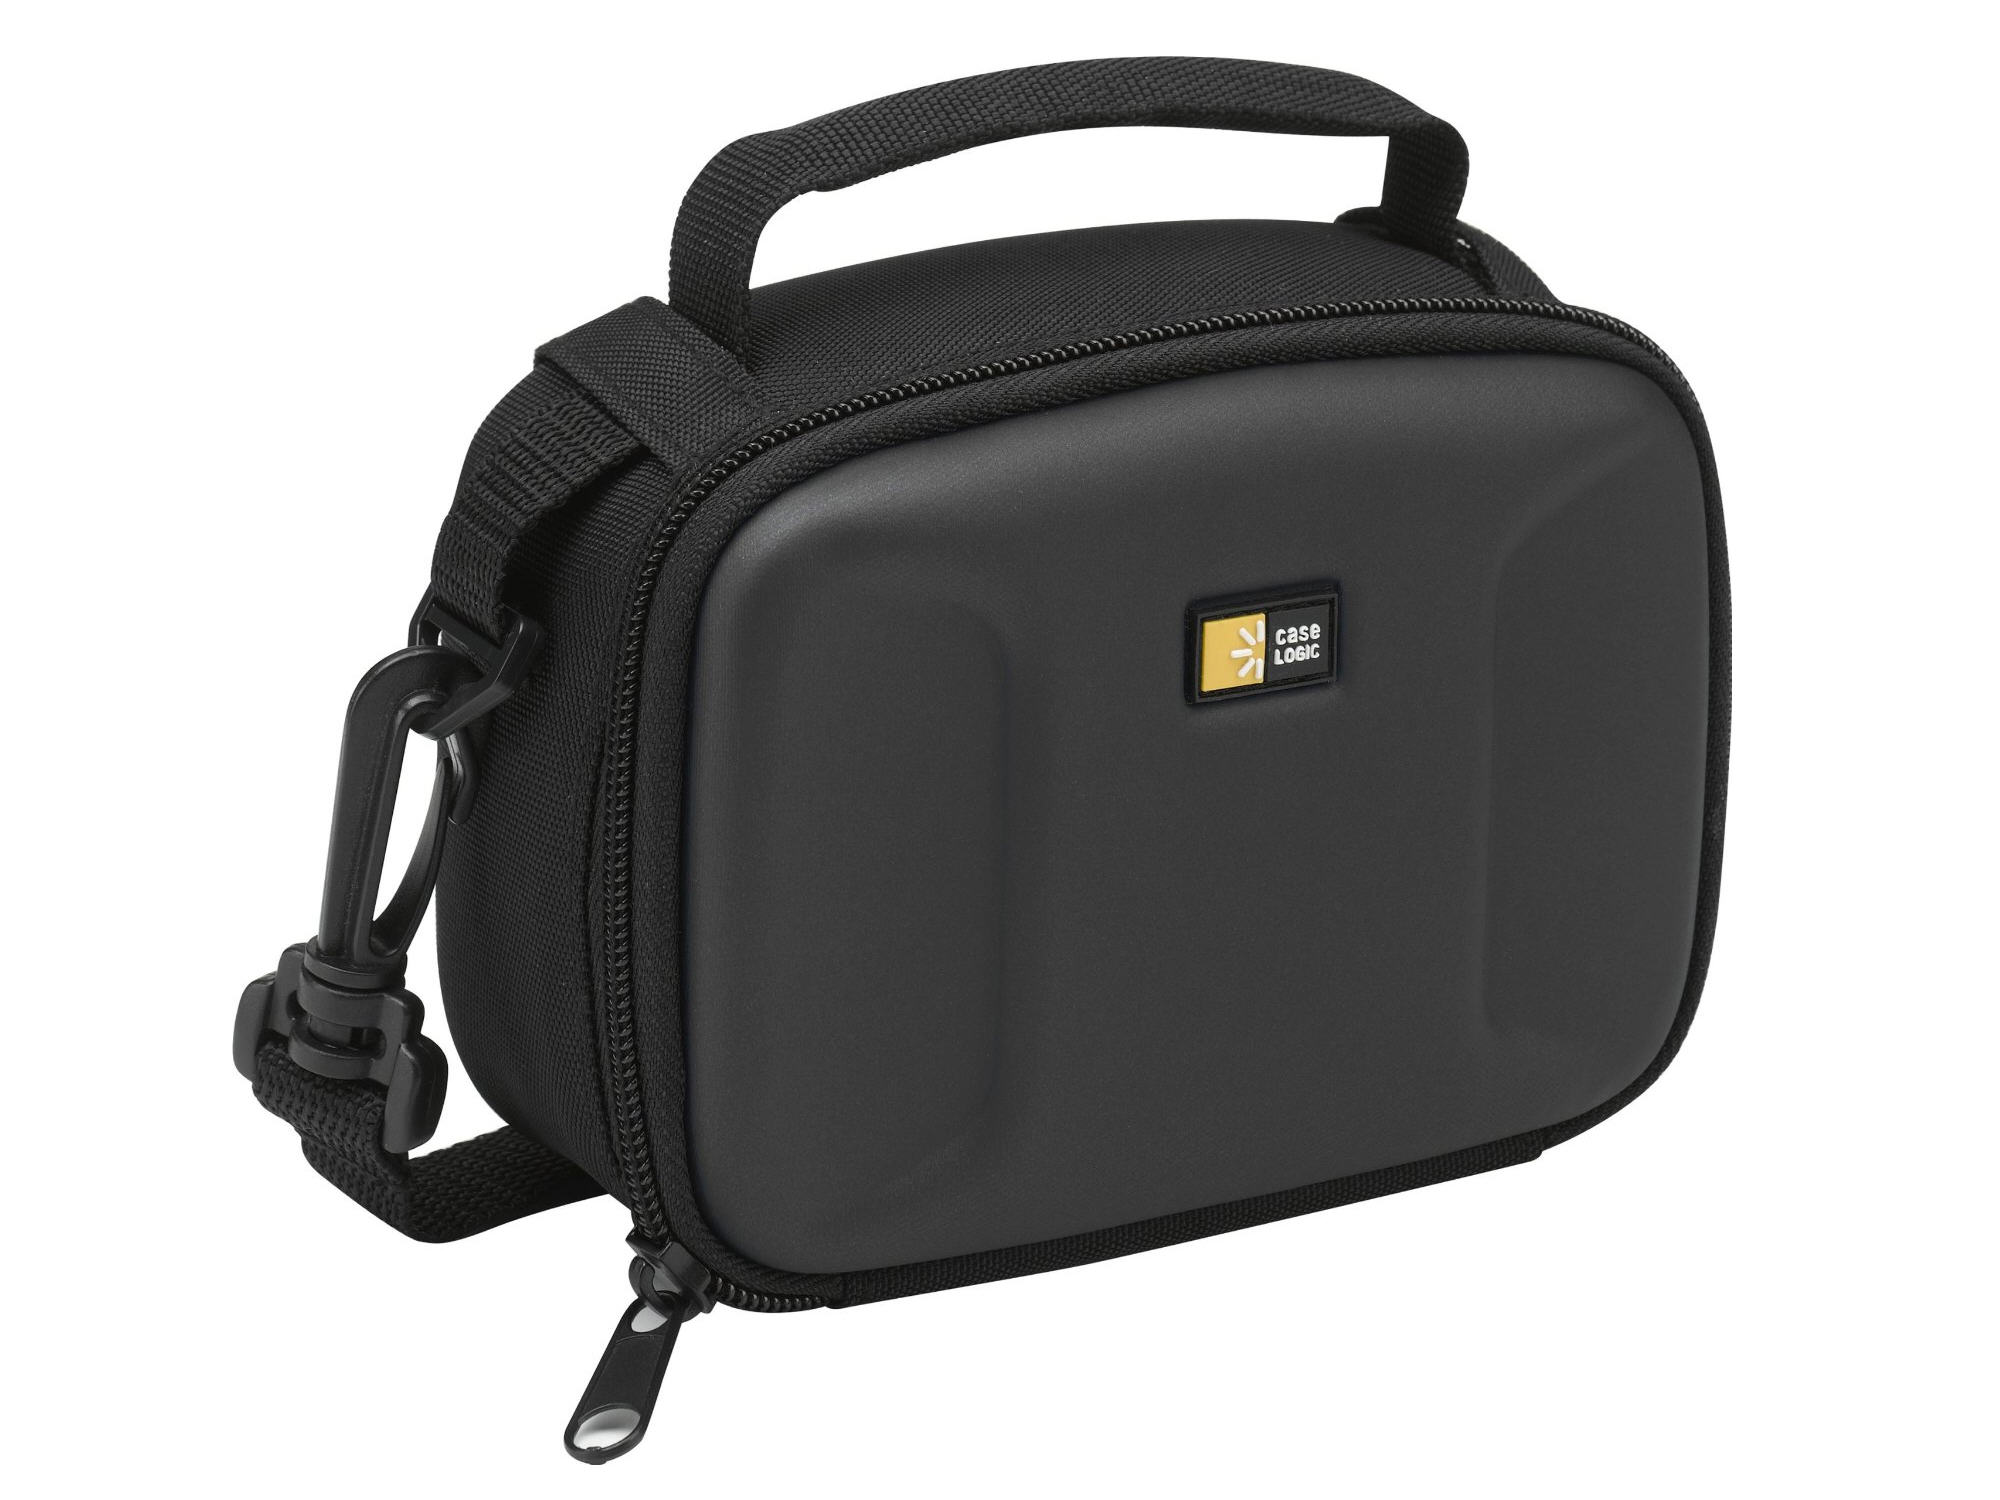 Case Logic Eva Compact Camcorder Case - Black